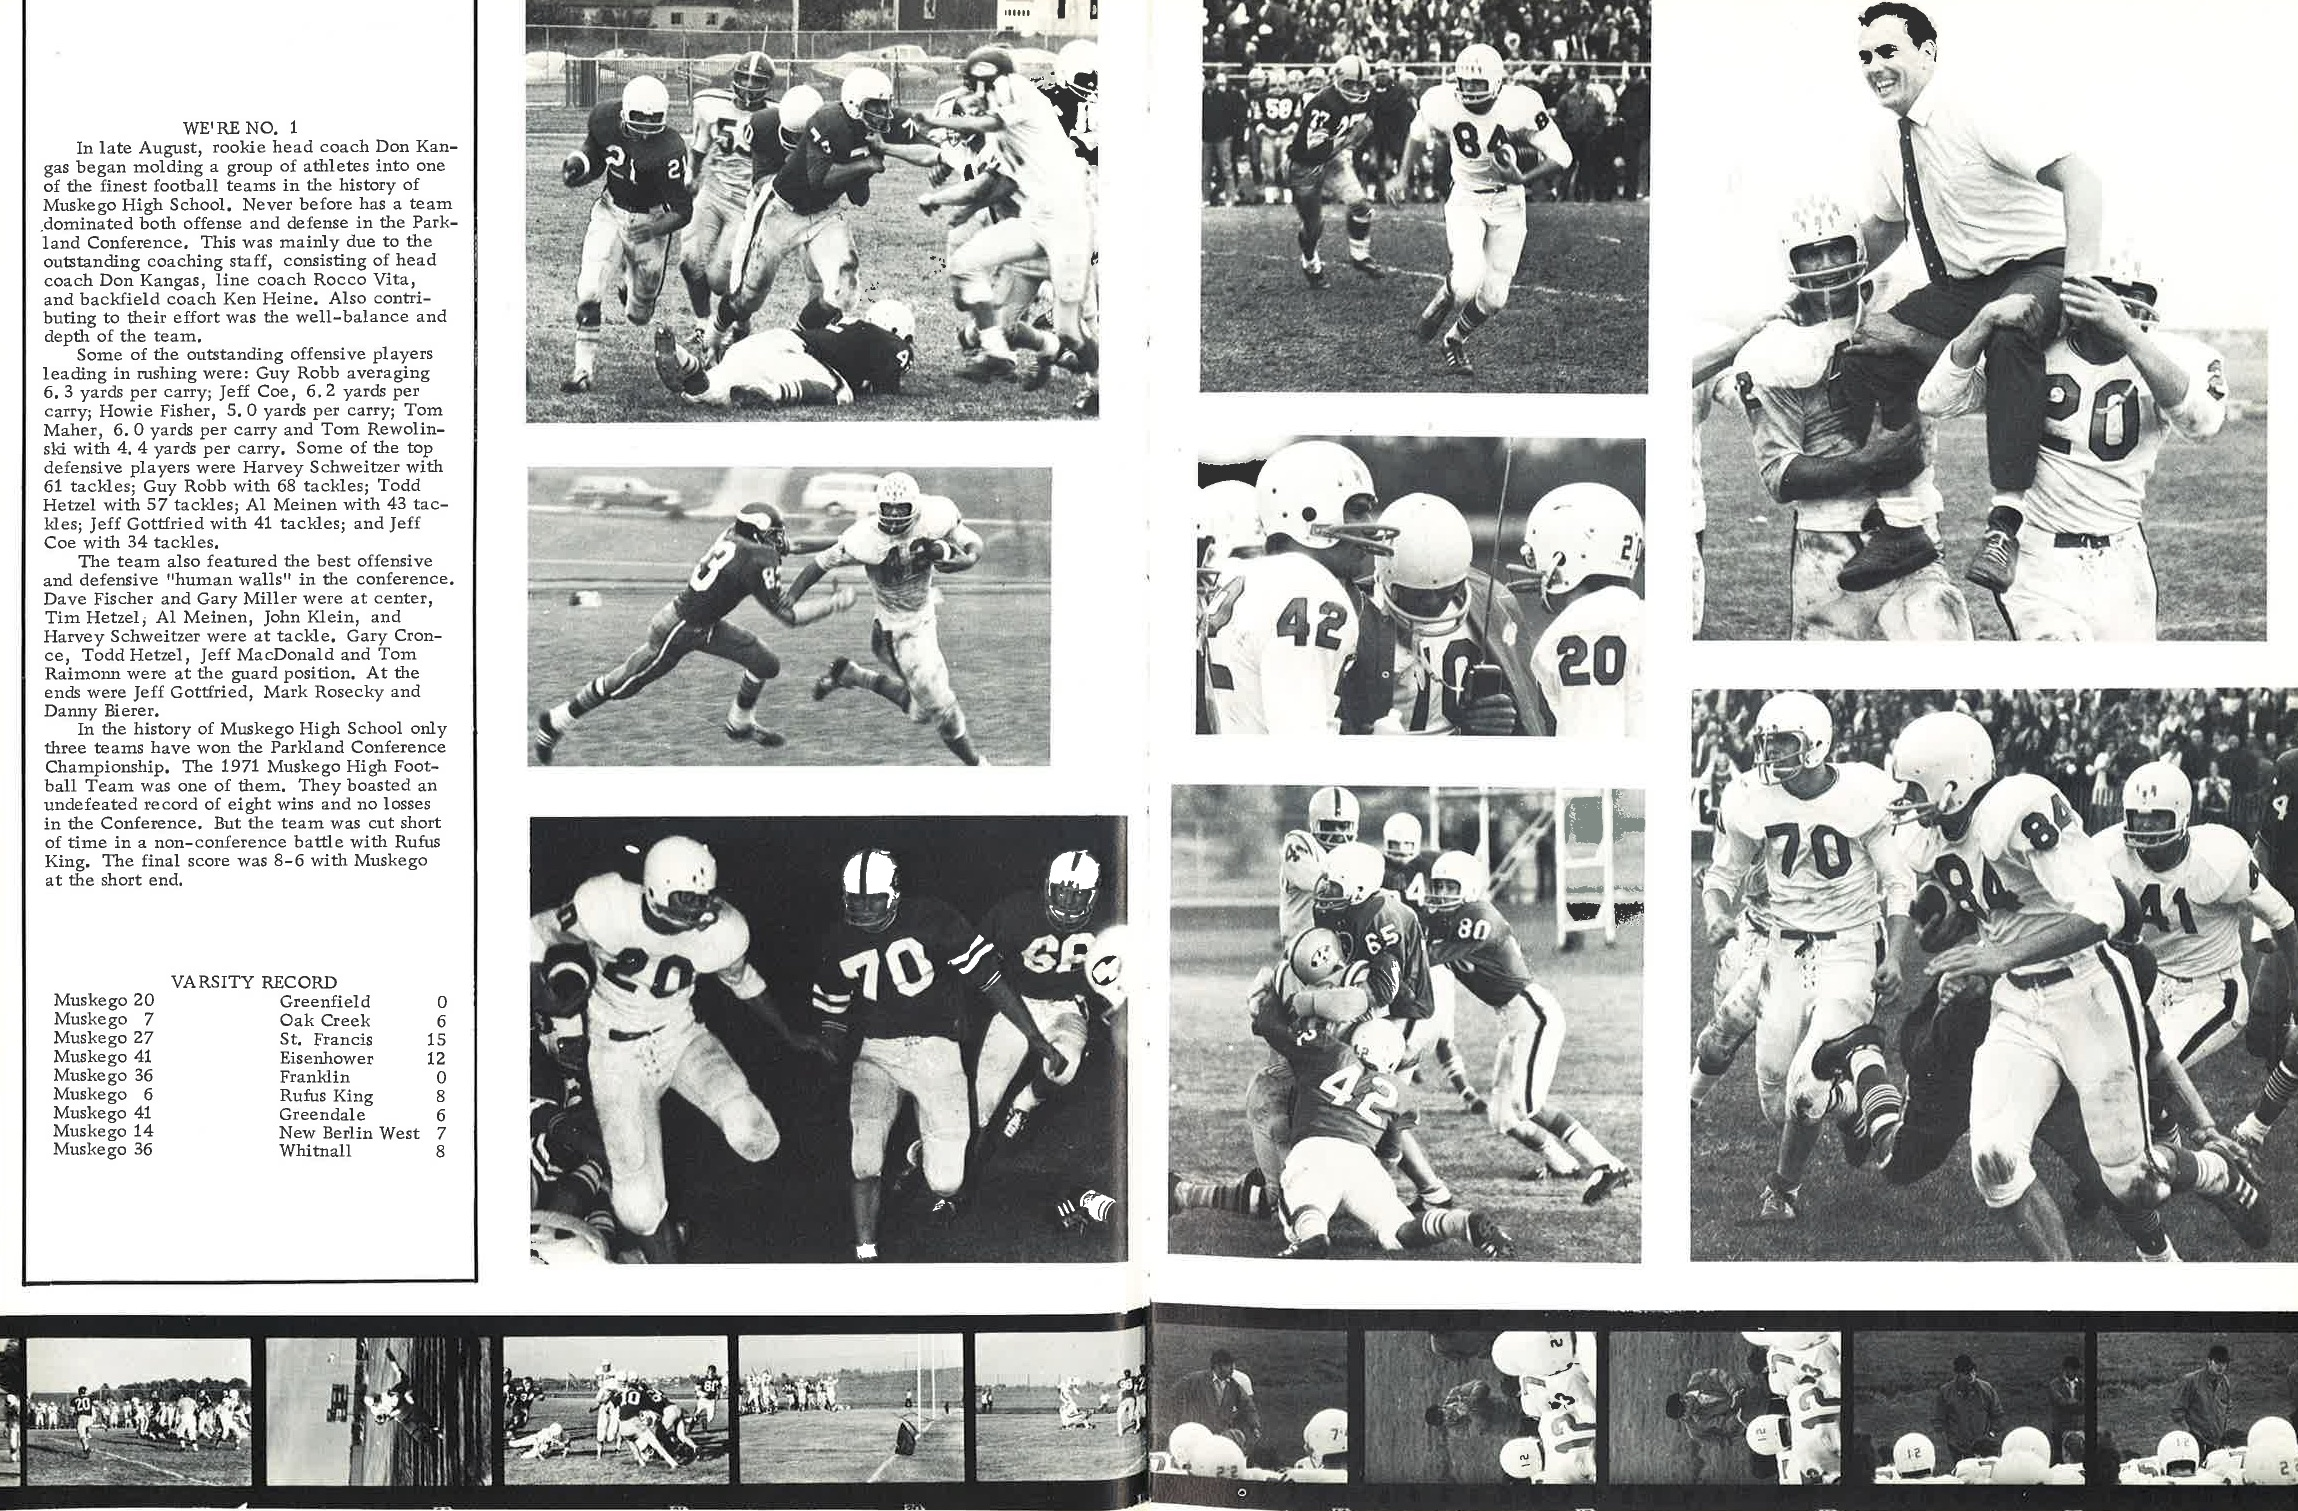 1972_Yearbook_52-53.jpg